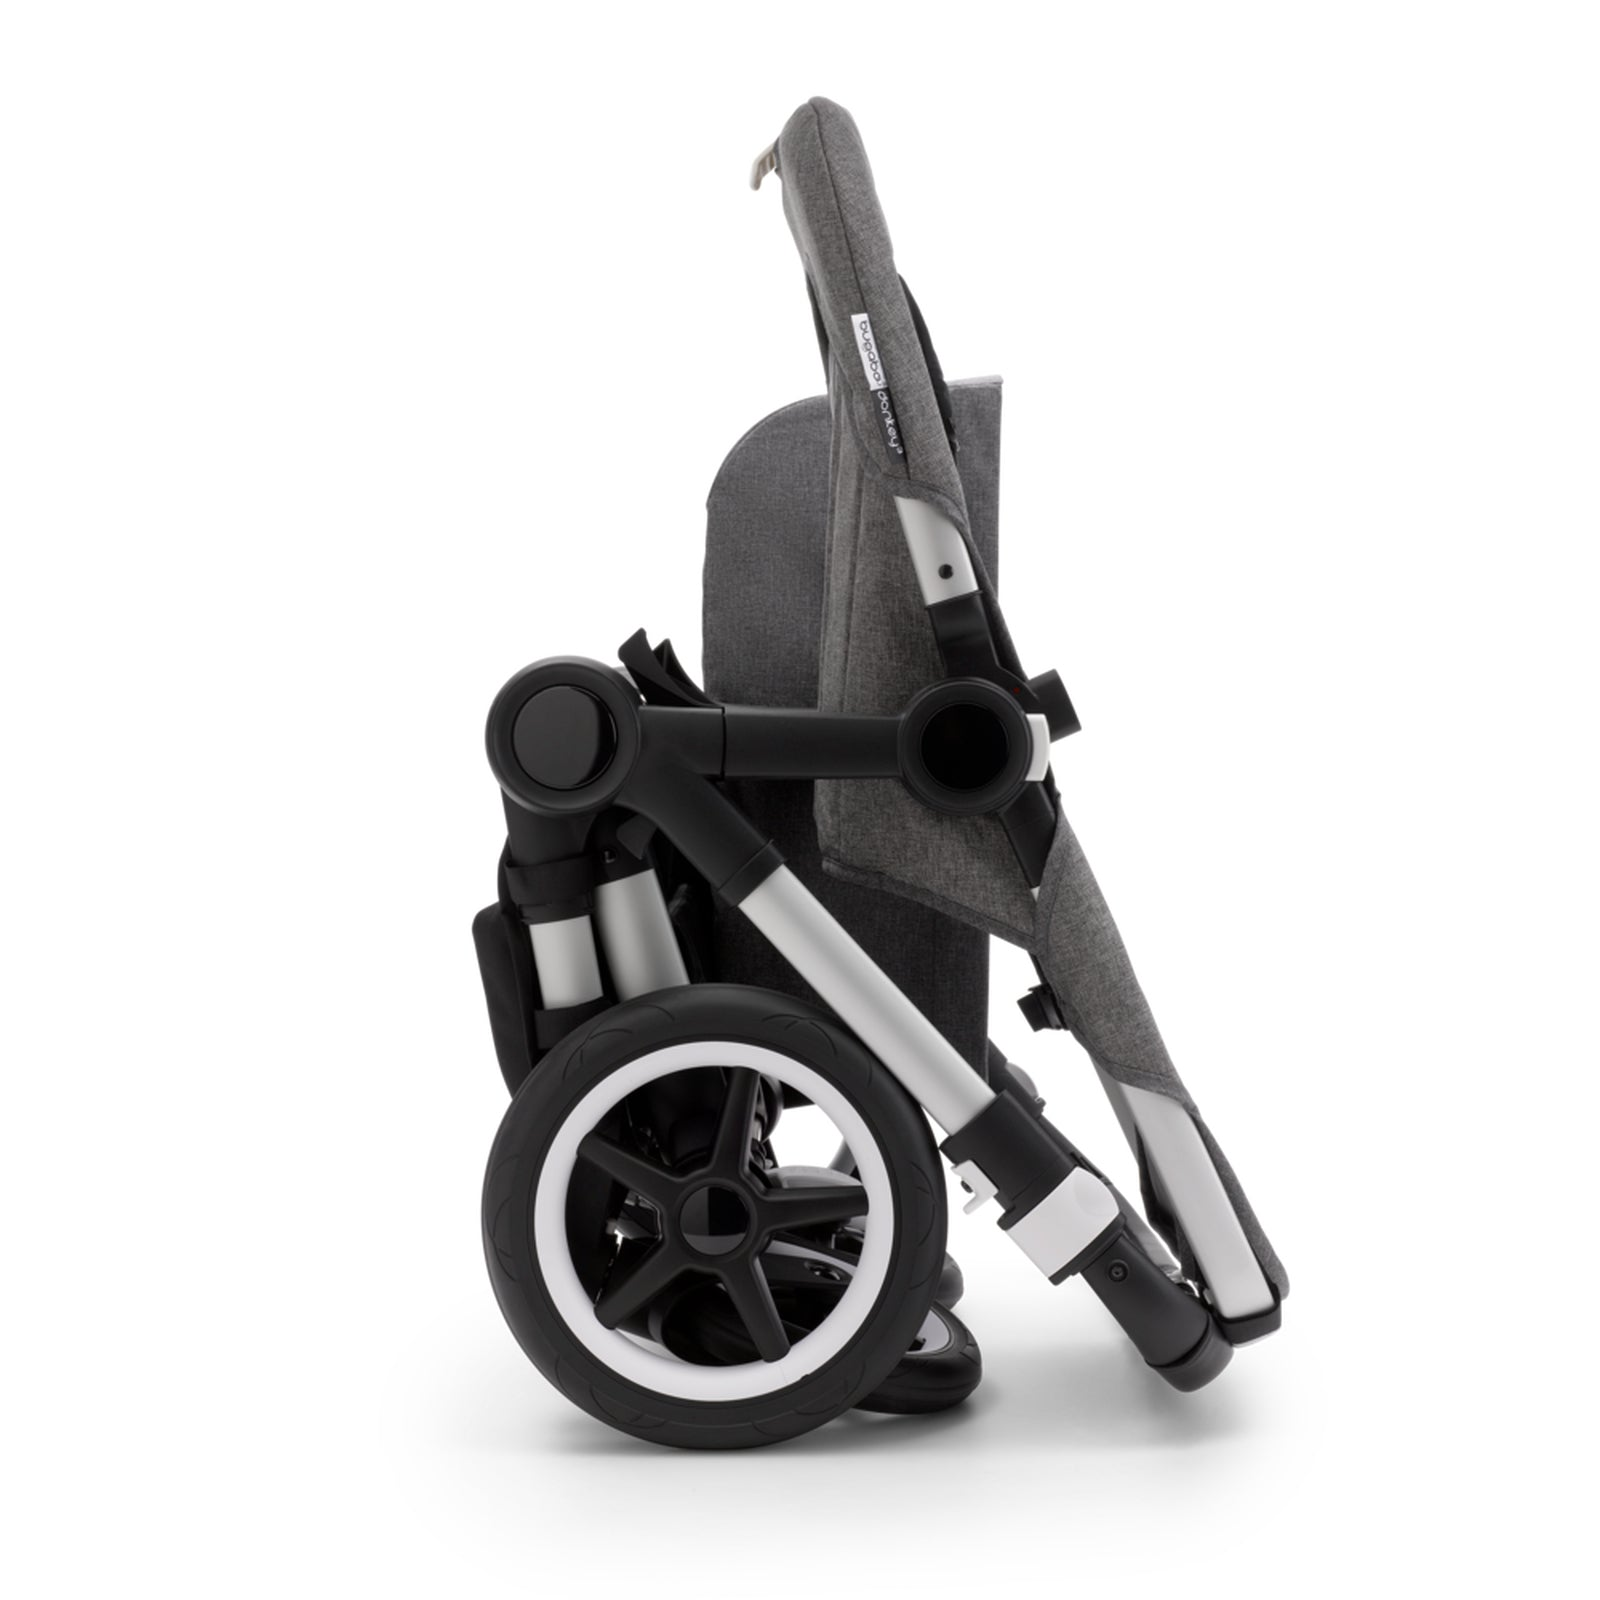 Bugaboo Donkey 3 Twin Seat and Carrycot Pushchair - Mineral Taupe Melange